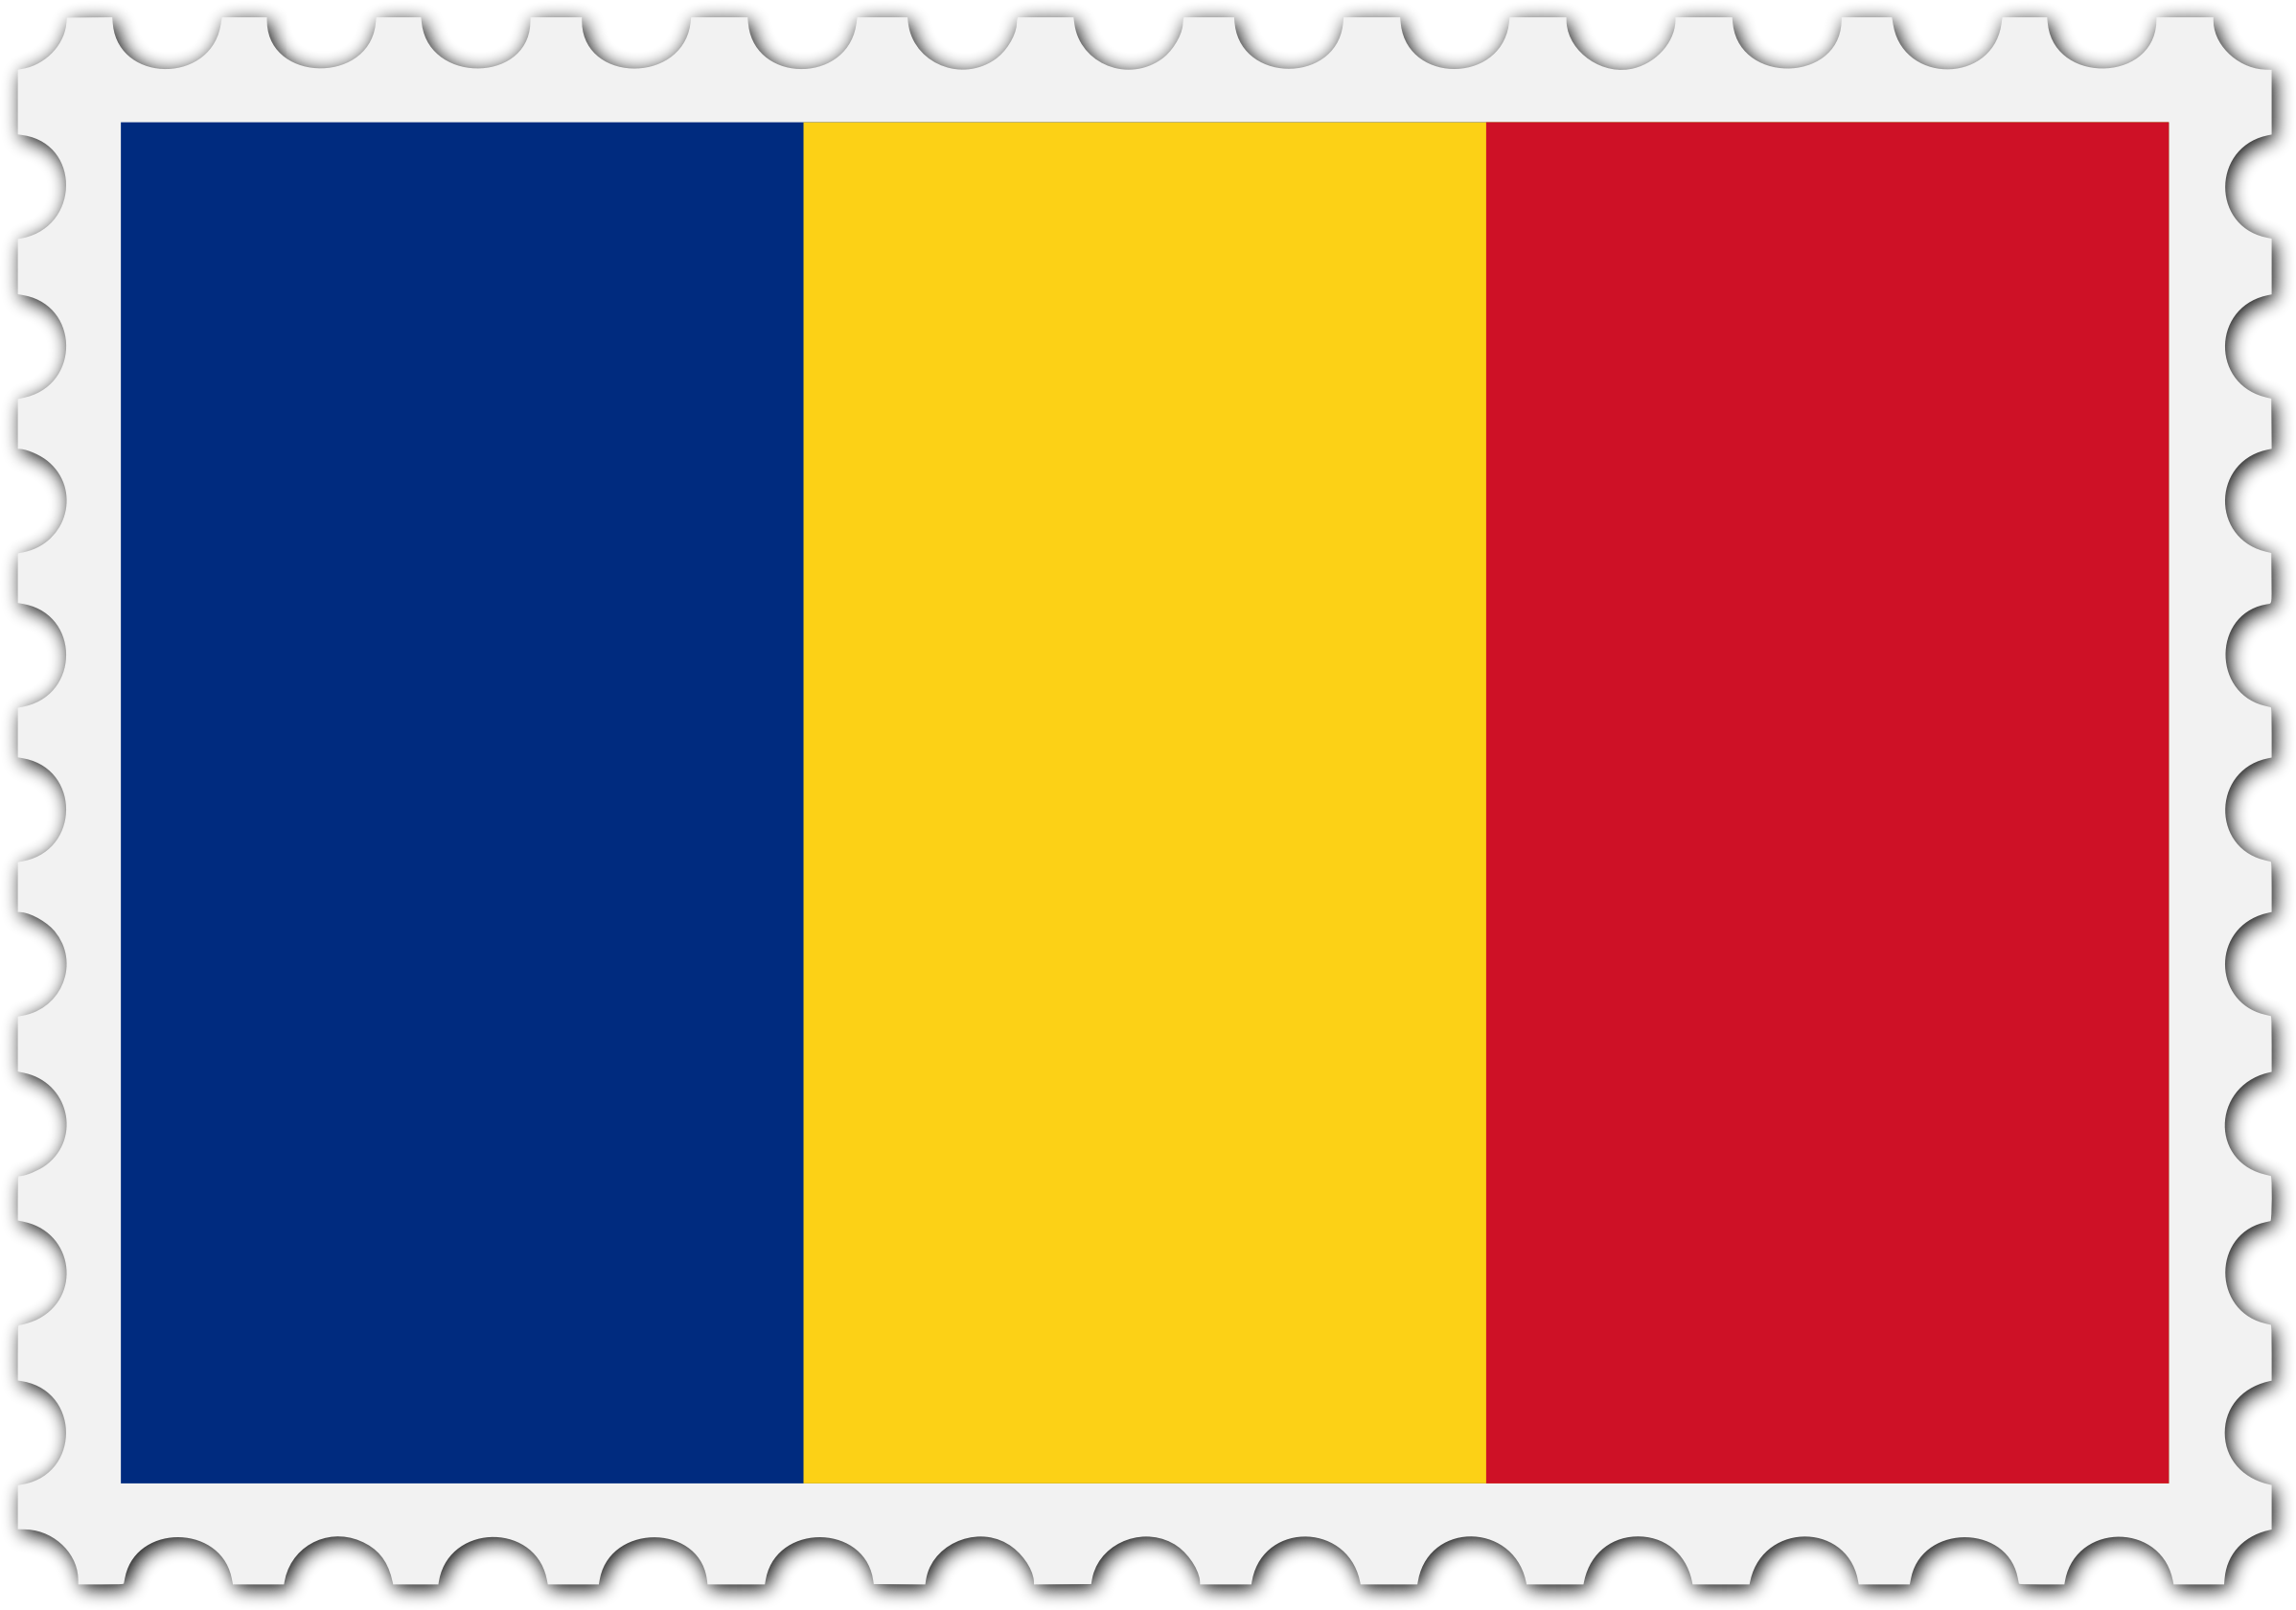 Romania flag stamp by Firkin